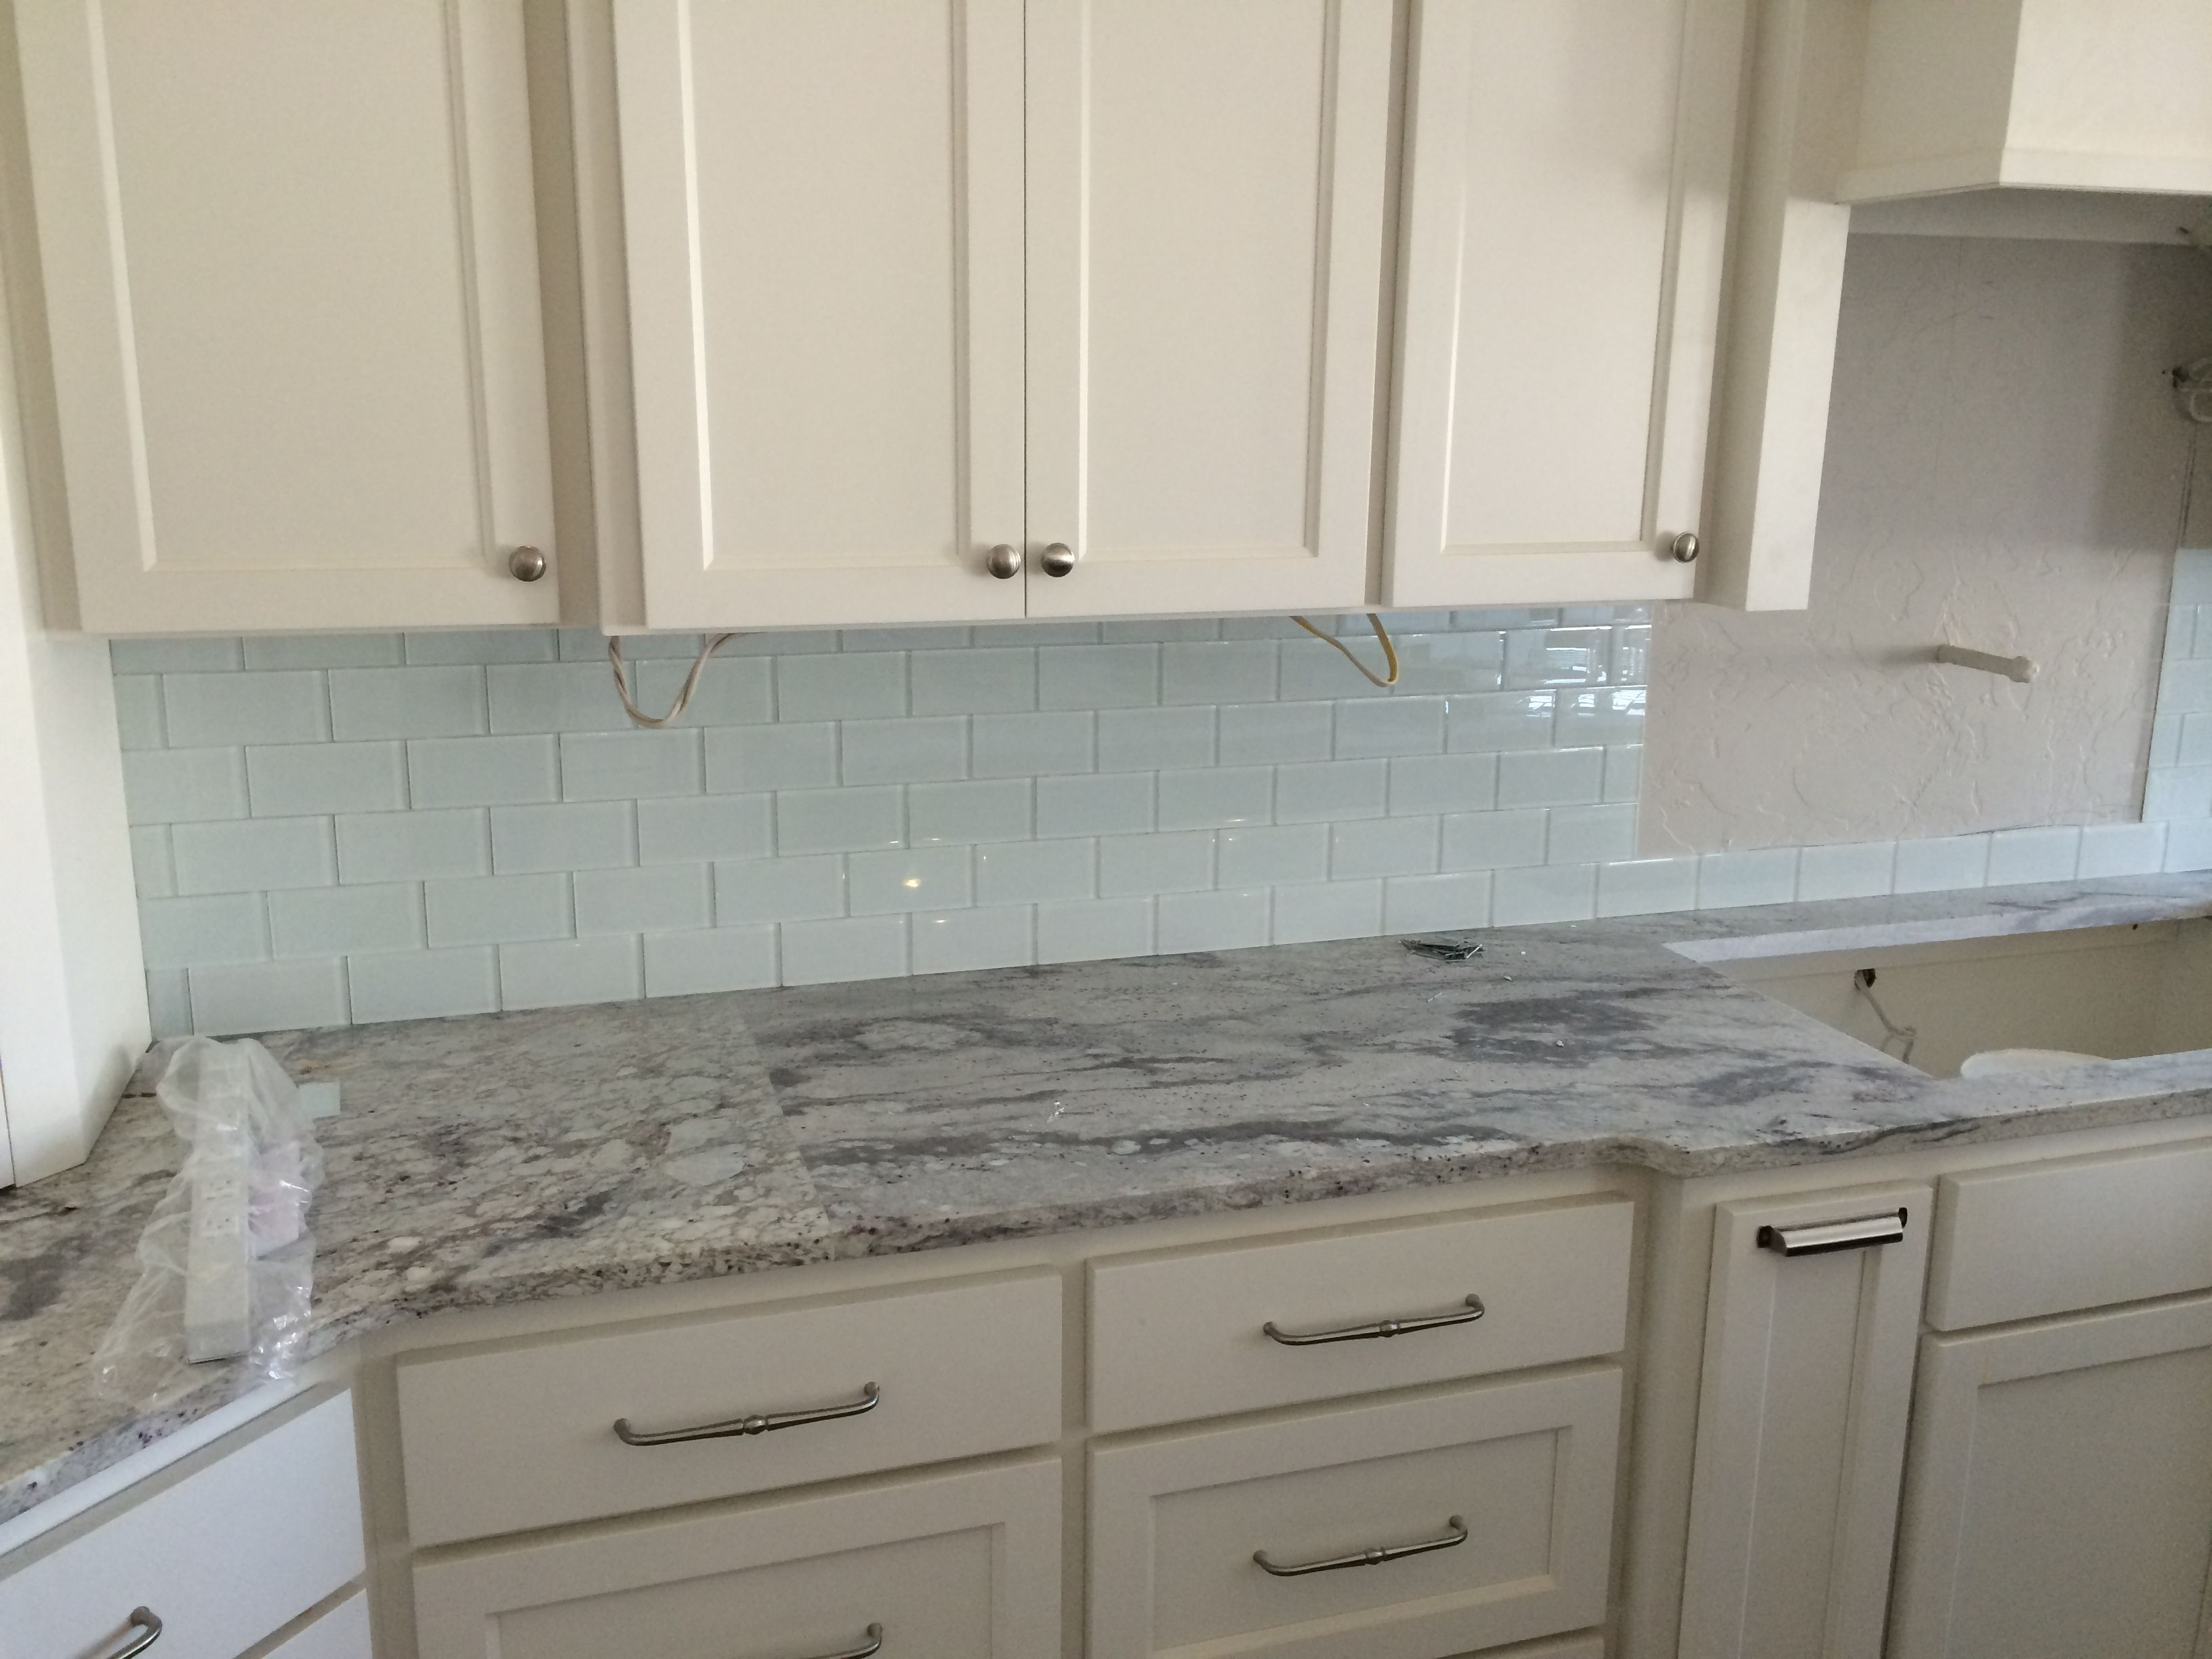 Glass Kitchen Backsplash White Cabinets backsplashes with white cabinets - yahoo image search results